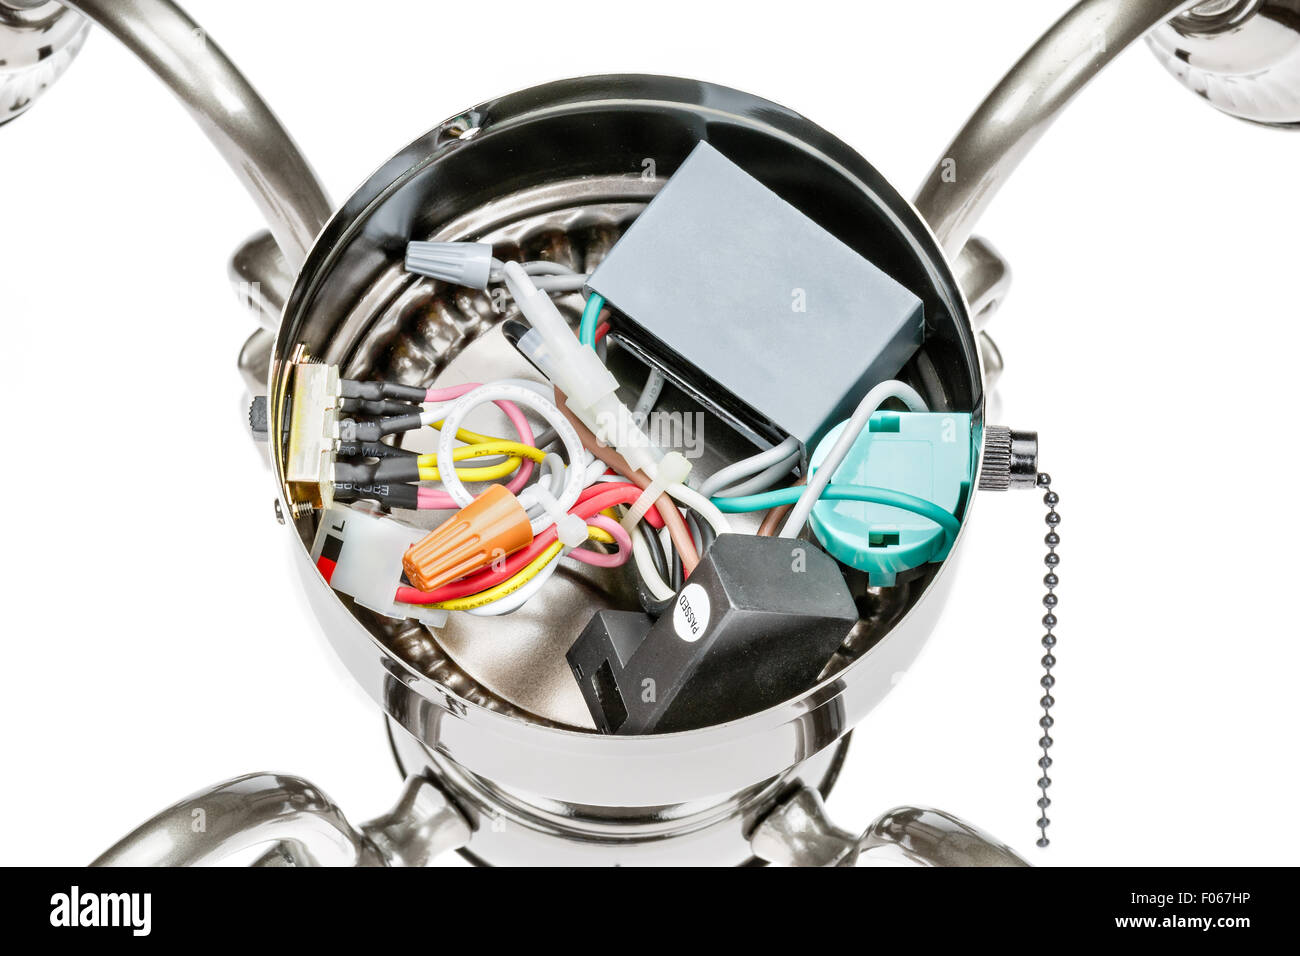 Internal Wiring Of A Ceiling Fan Light Fixture Stock Photo Alamy